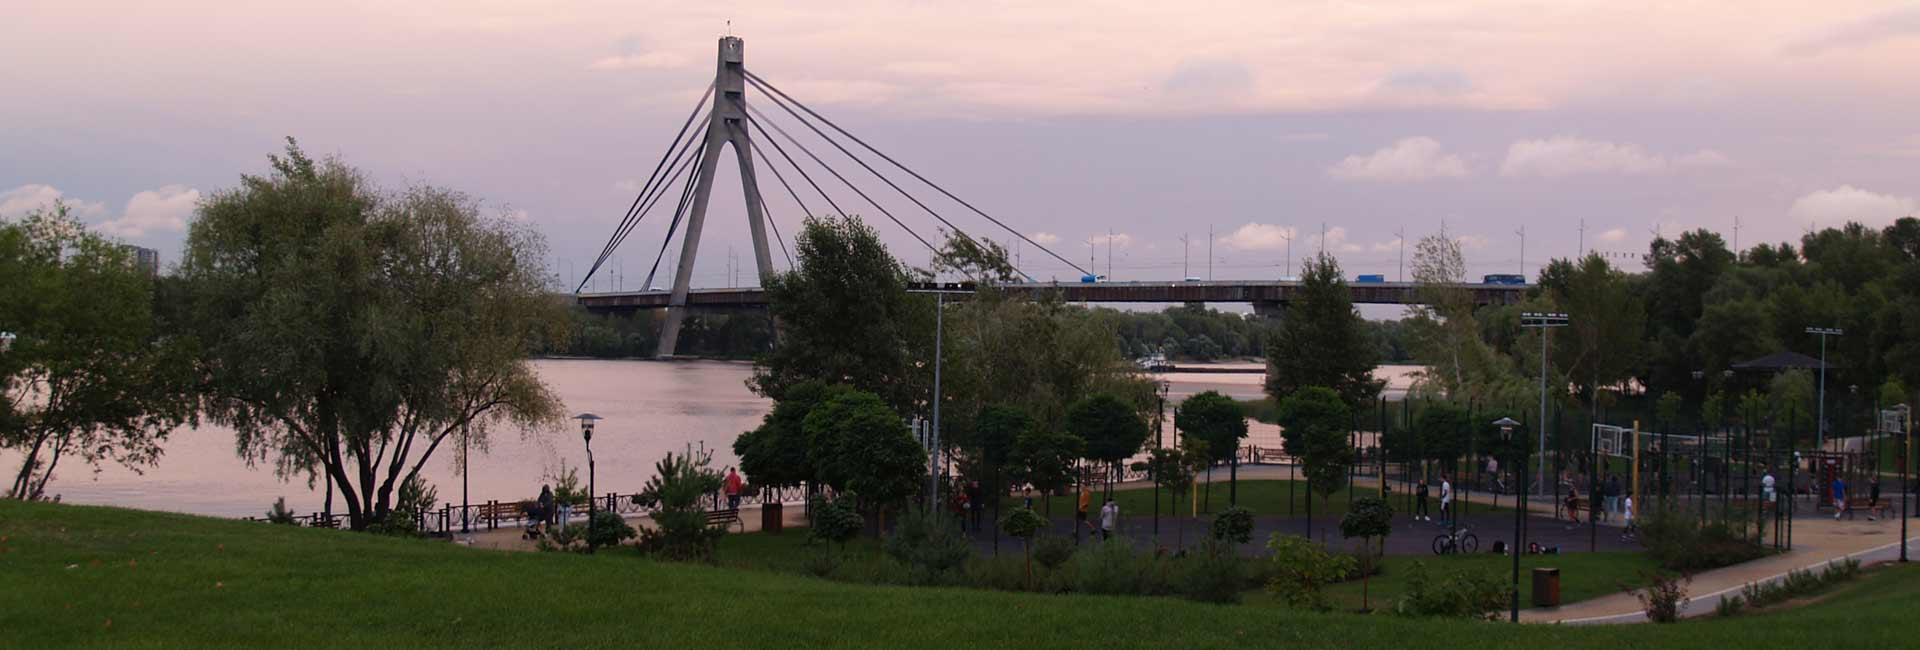 North Bridge in Kiev